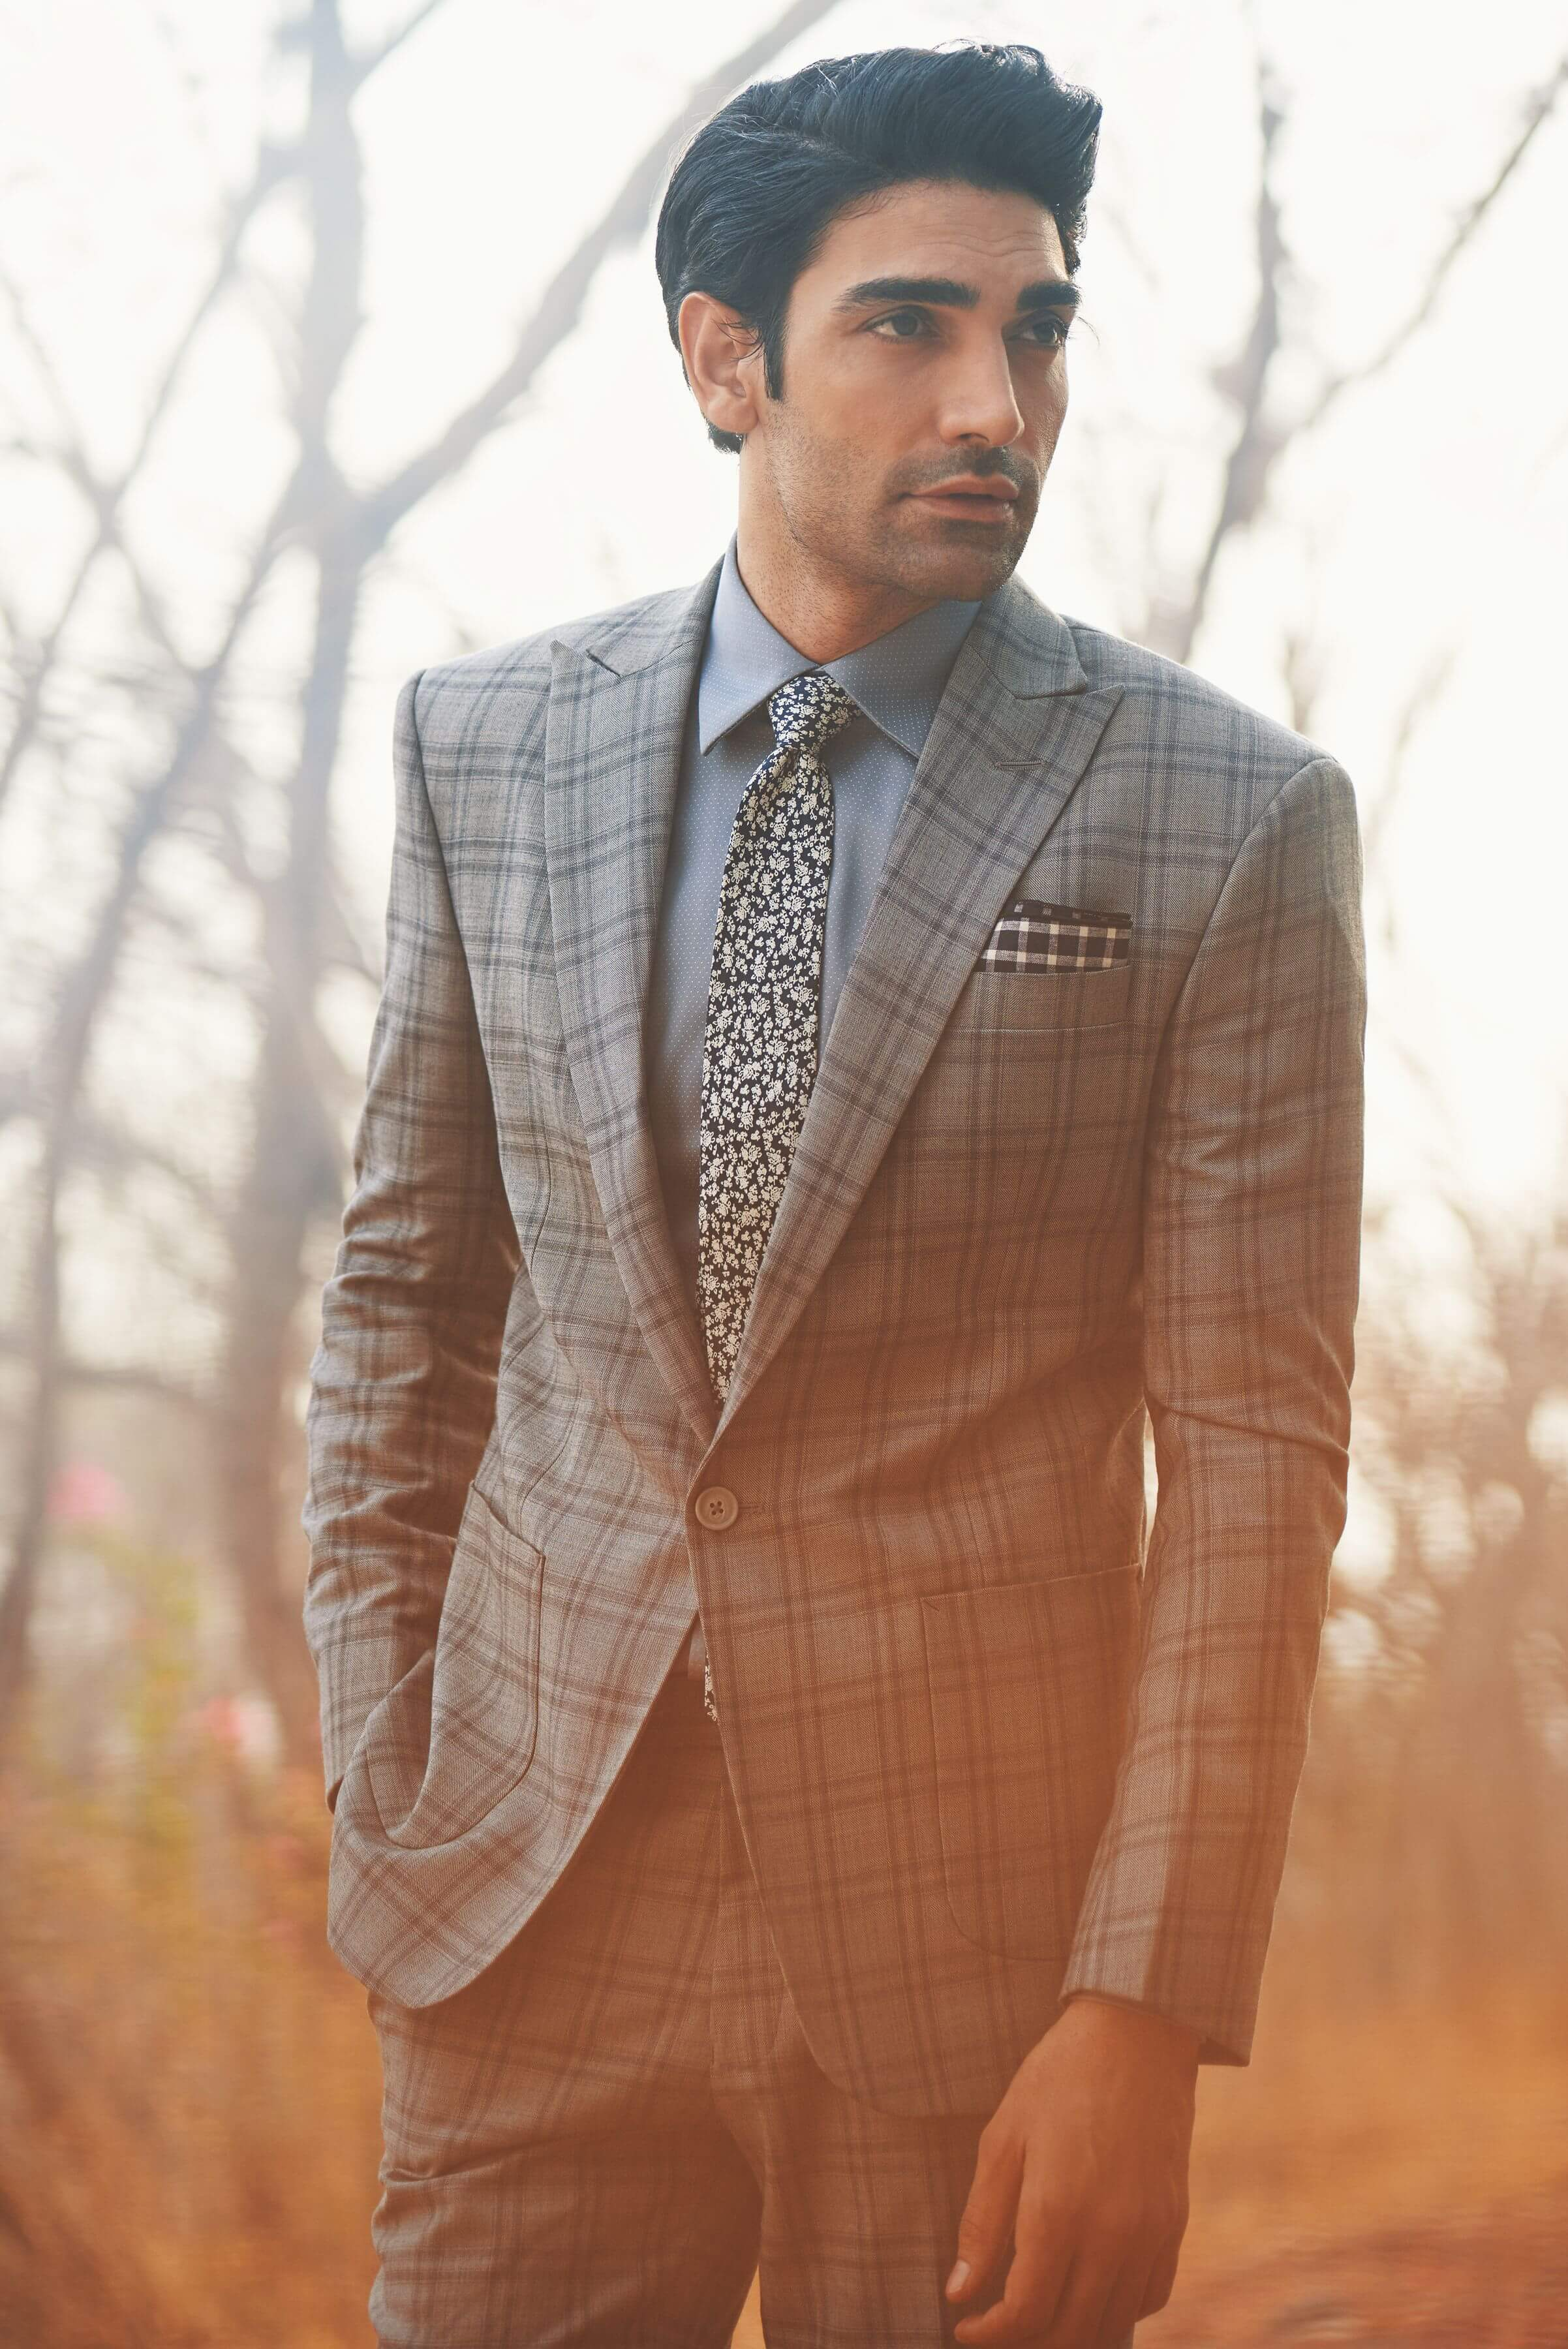 Classic single-button, single-breasted suit with a peak lapel